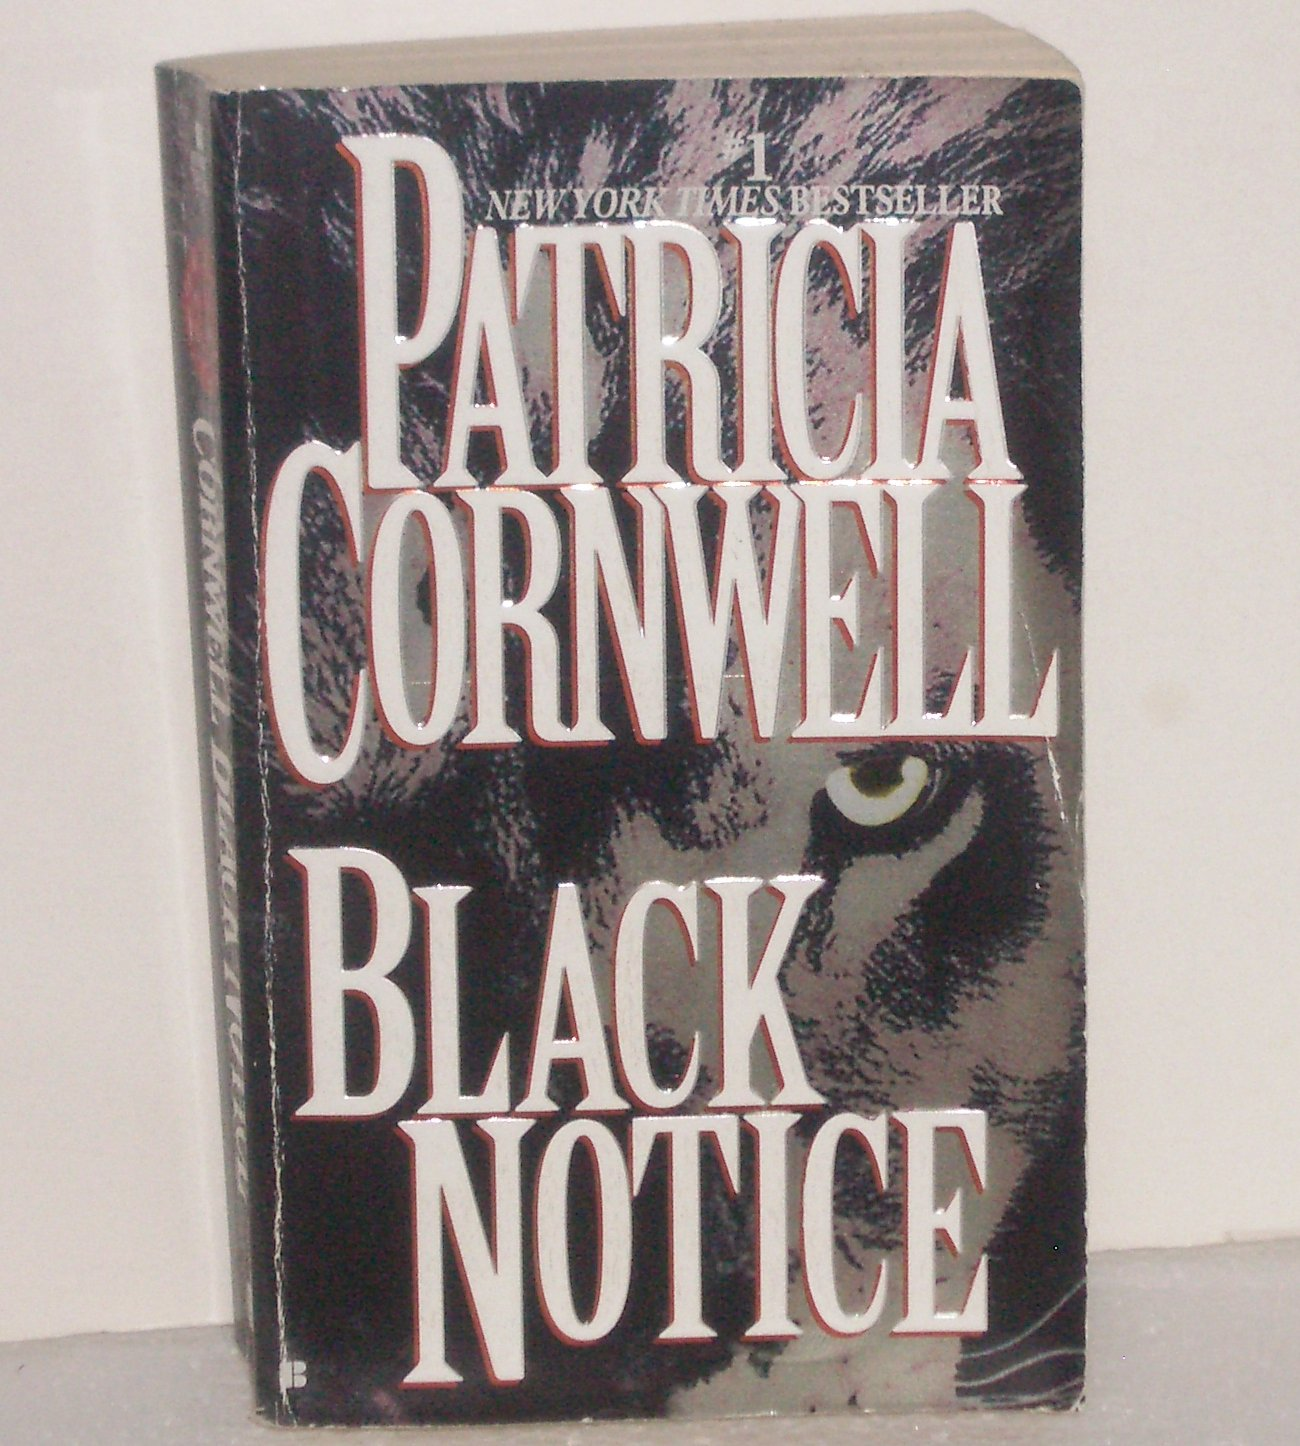 Black Notice by Patricia Cornwell a Kay Scarpetta Forensic Mystery 2000